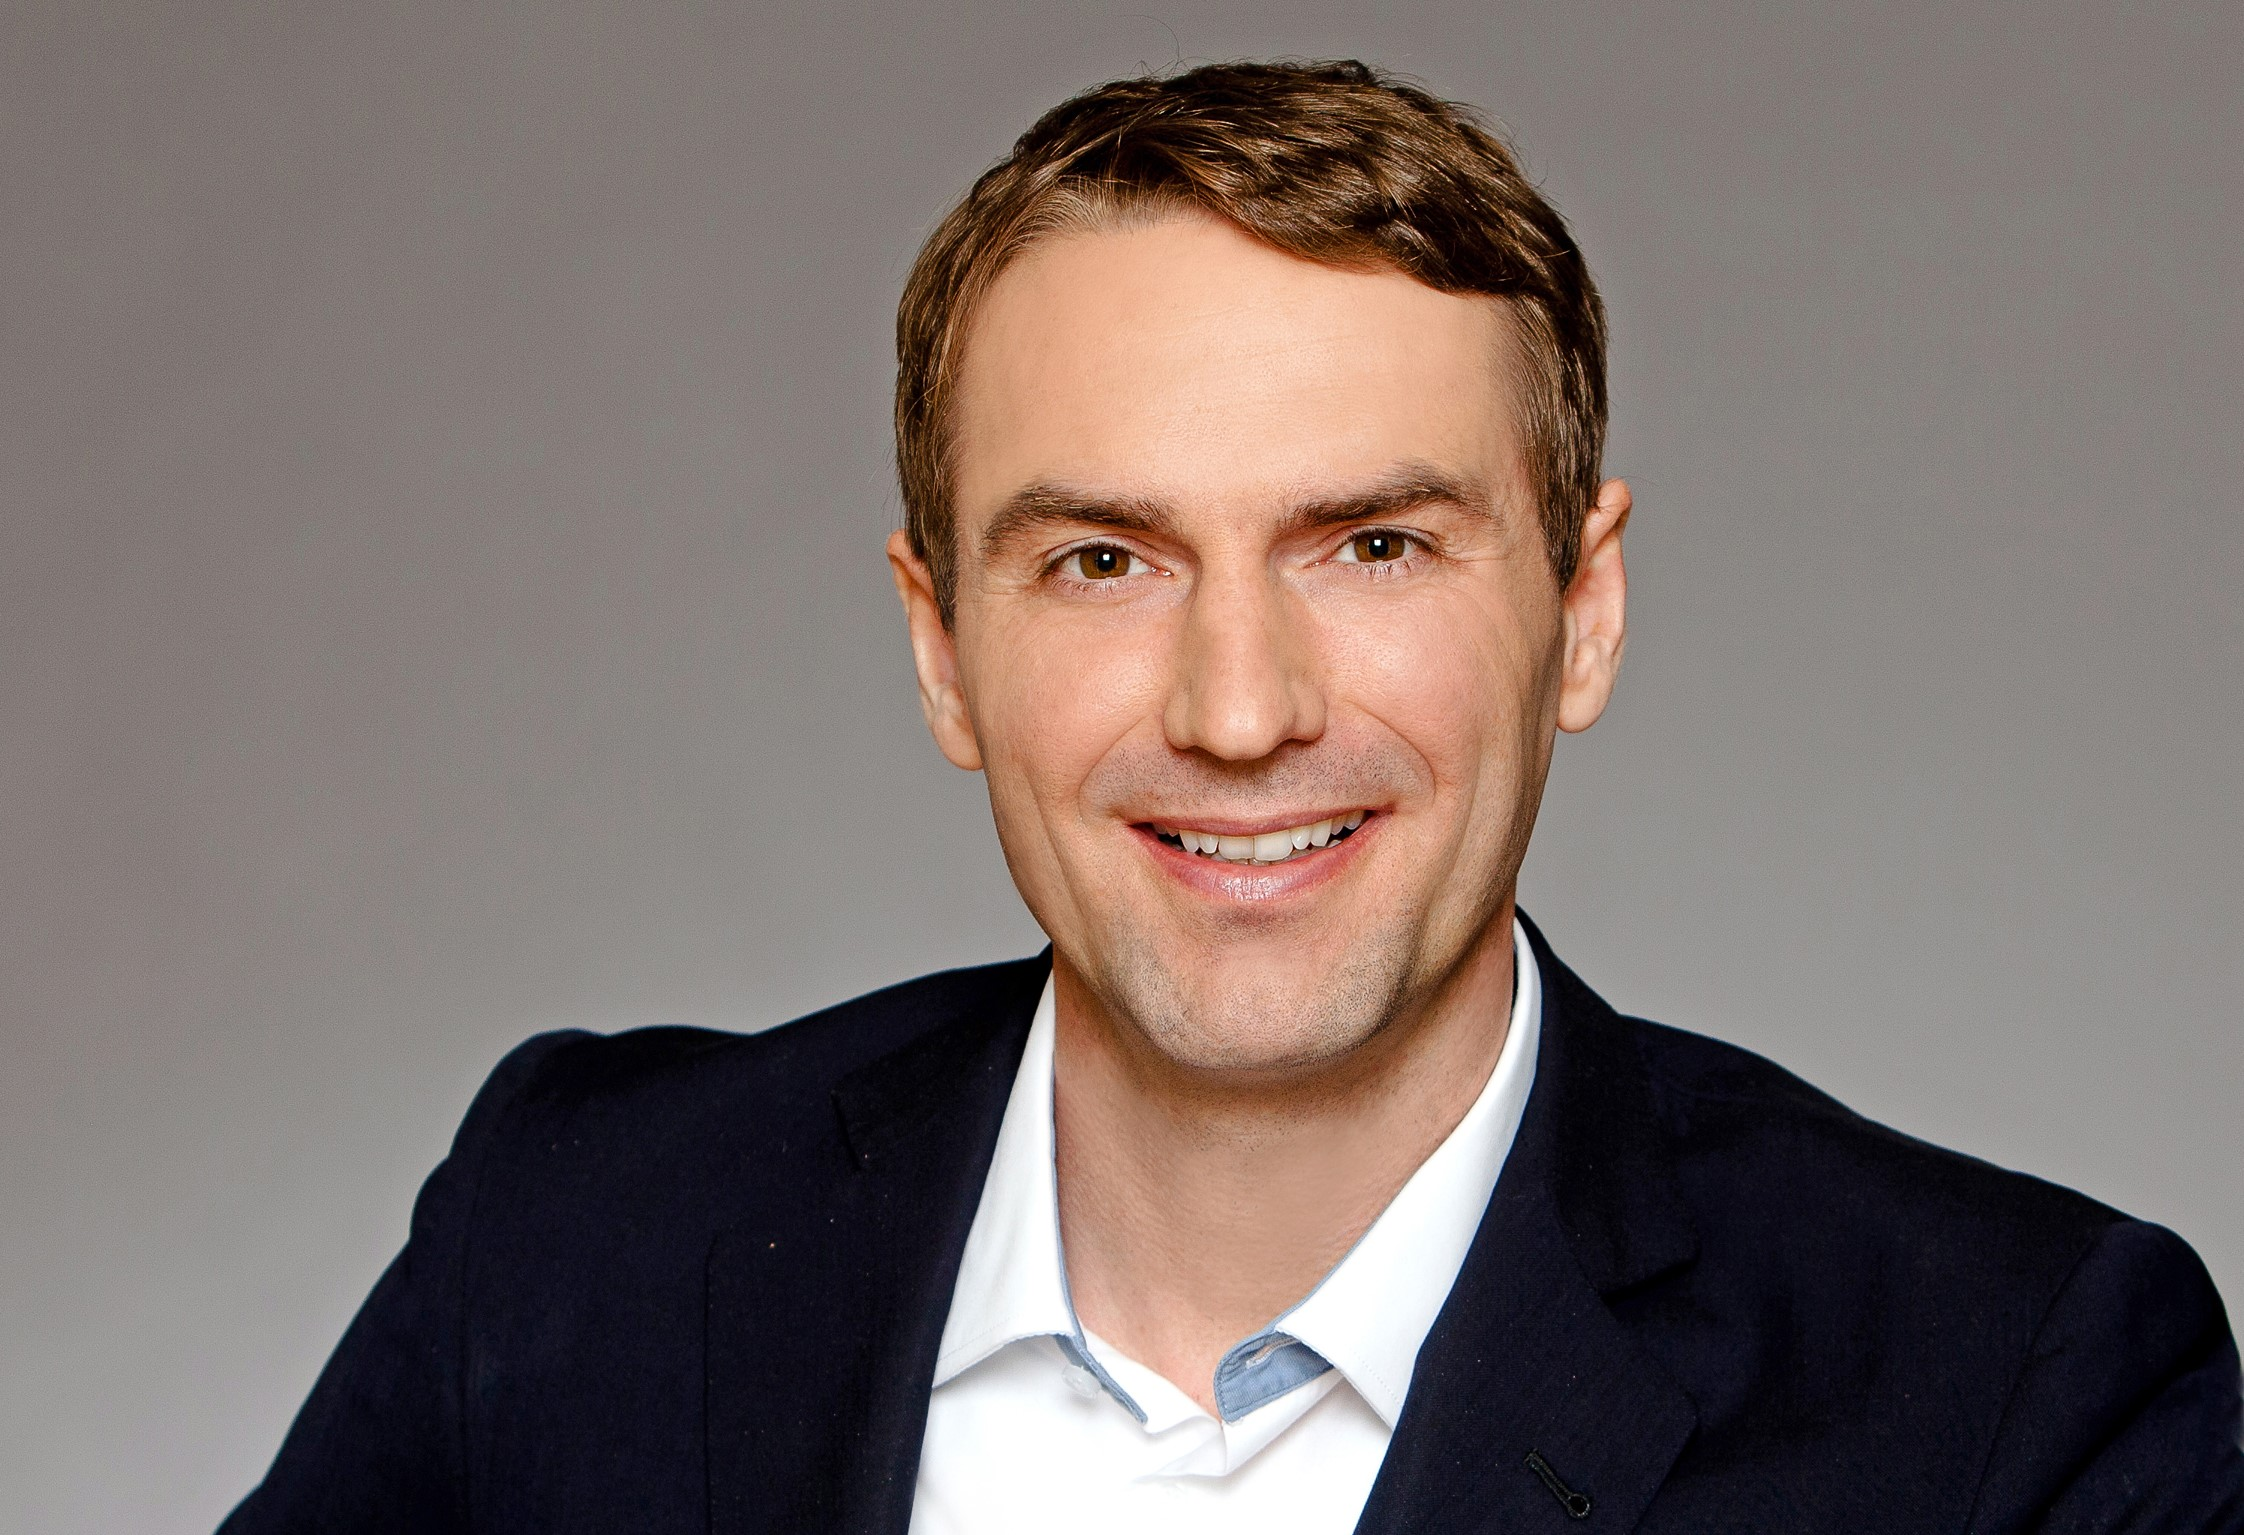 Martin Muth ist neuer Head of Marketing and Sales bei aconso